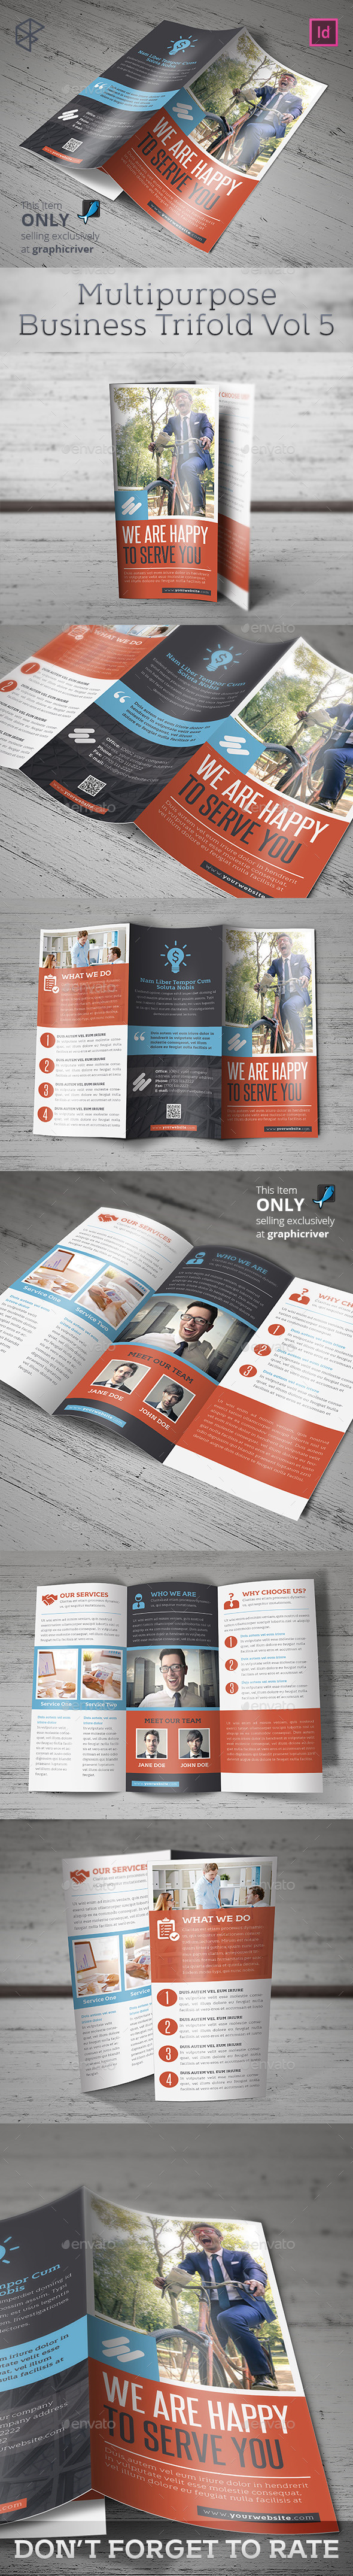 Multipurpose Business Trifold Vol 5 - Corporate Brochures